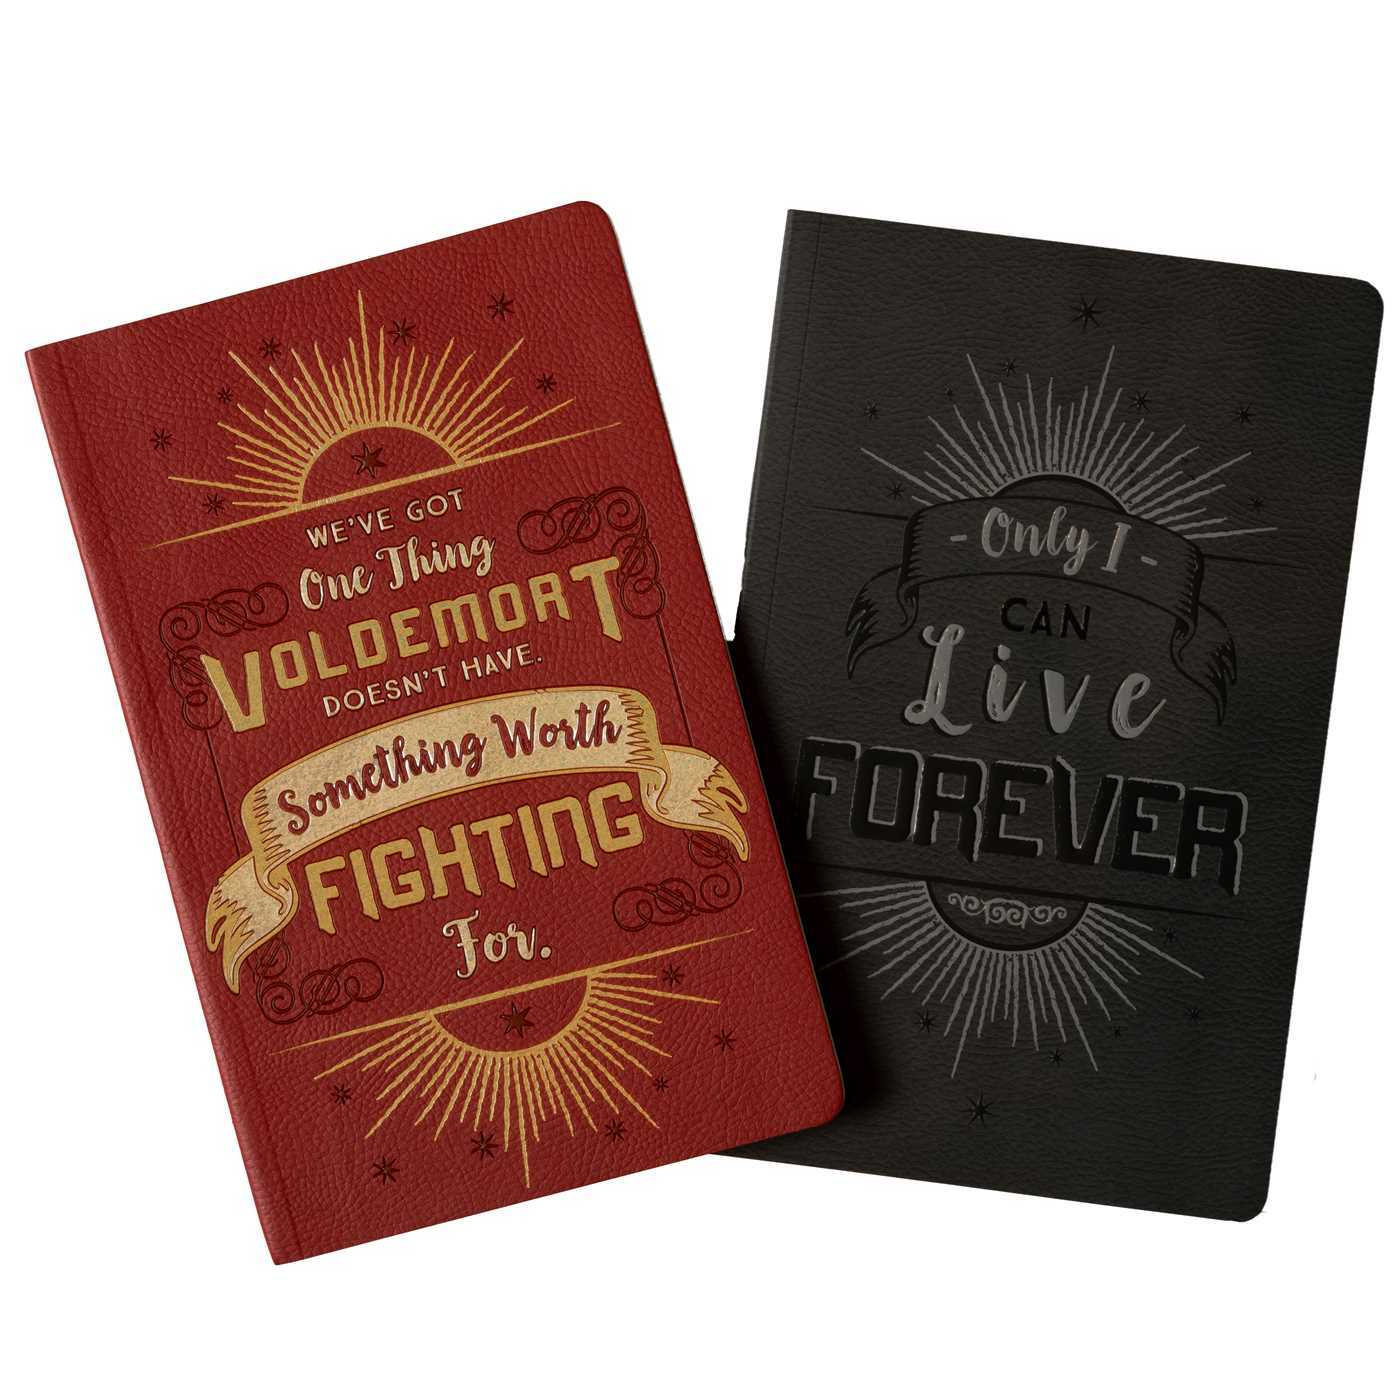 Harry Potter: Character Notebook Collection (Set of 2): Harry Potter and Voldemort